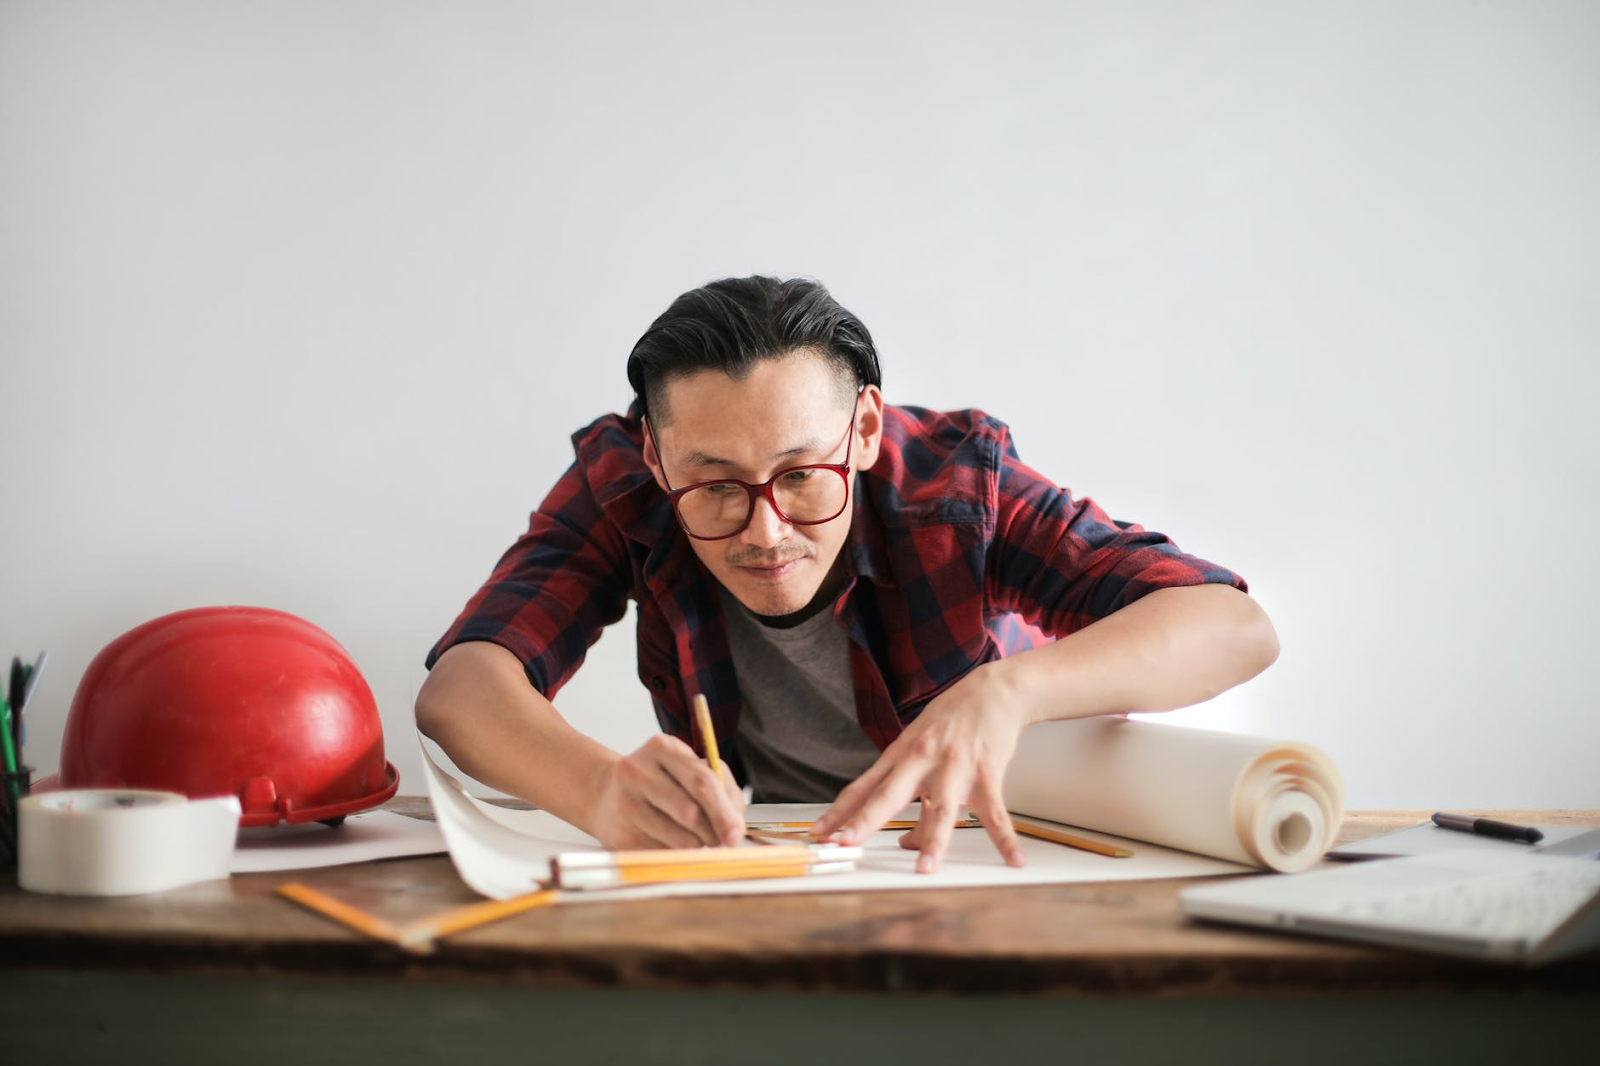 a man in a red flannel shirt who grew up as a gifted child completing blueprints for work